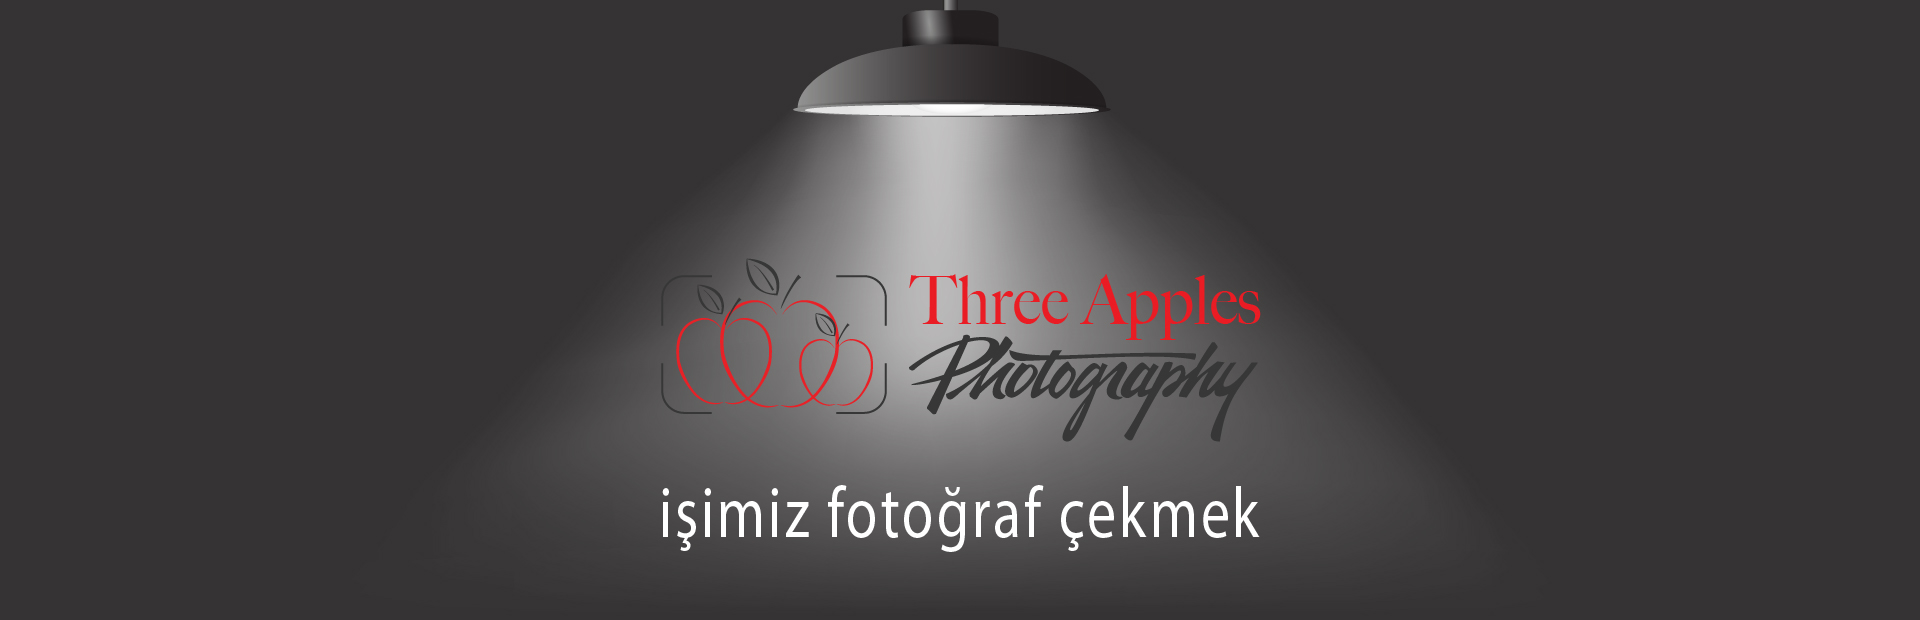 3 Apple Photography